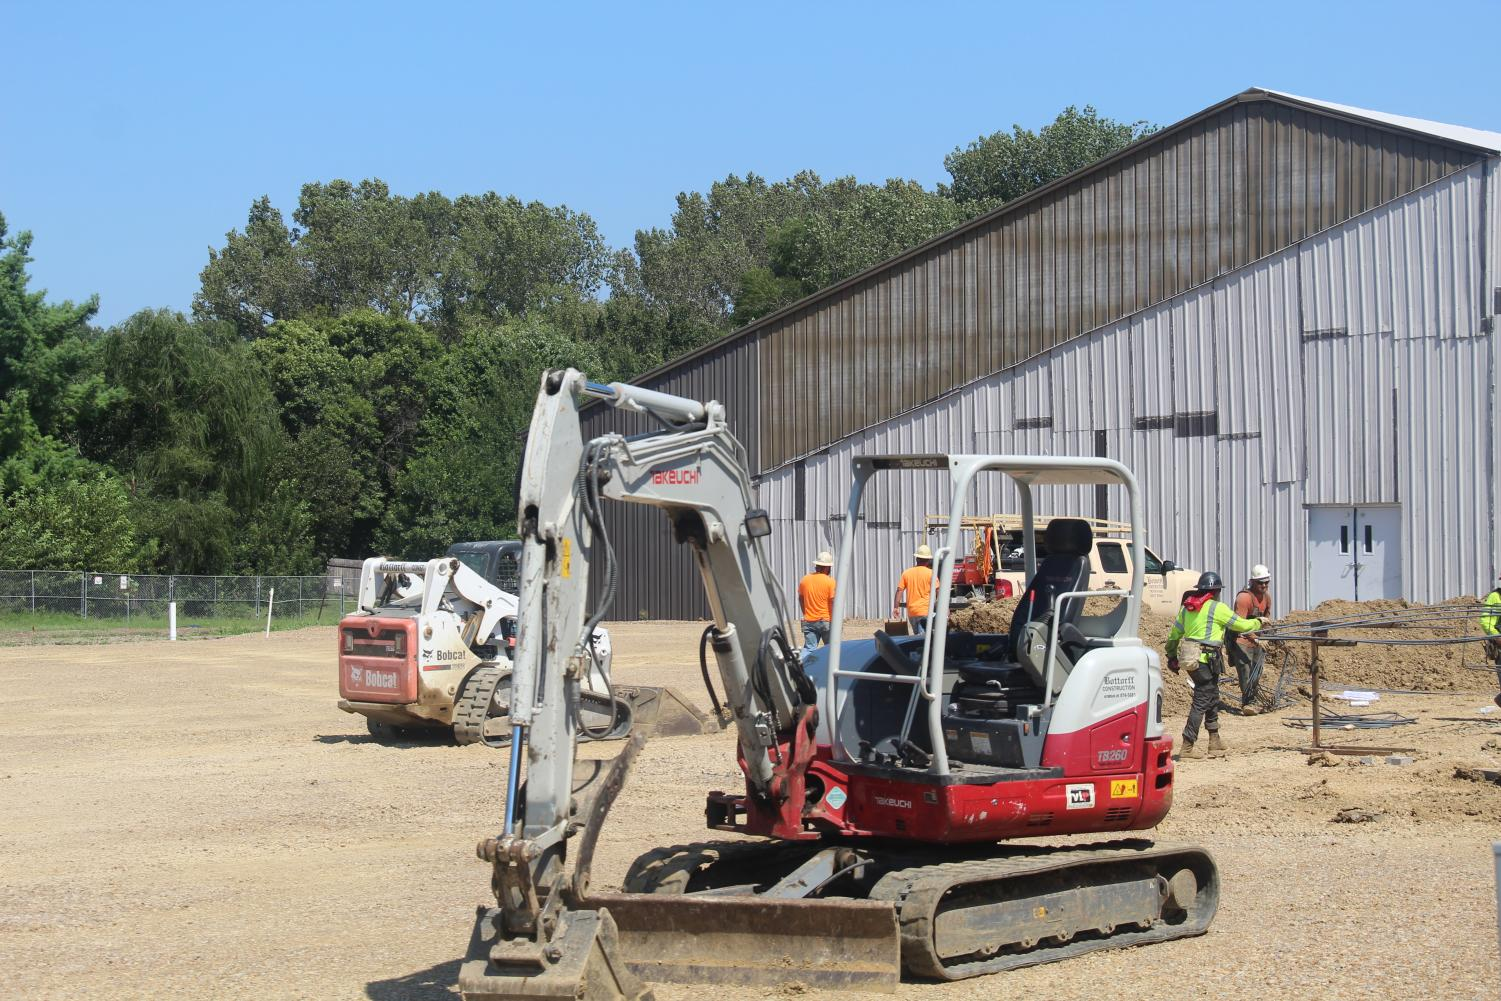 Construction+on+the+school+is+going+swimmingly.+Many+pieces+of+equipment+are+at+the+school.